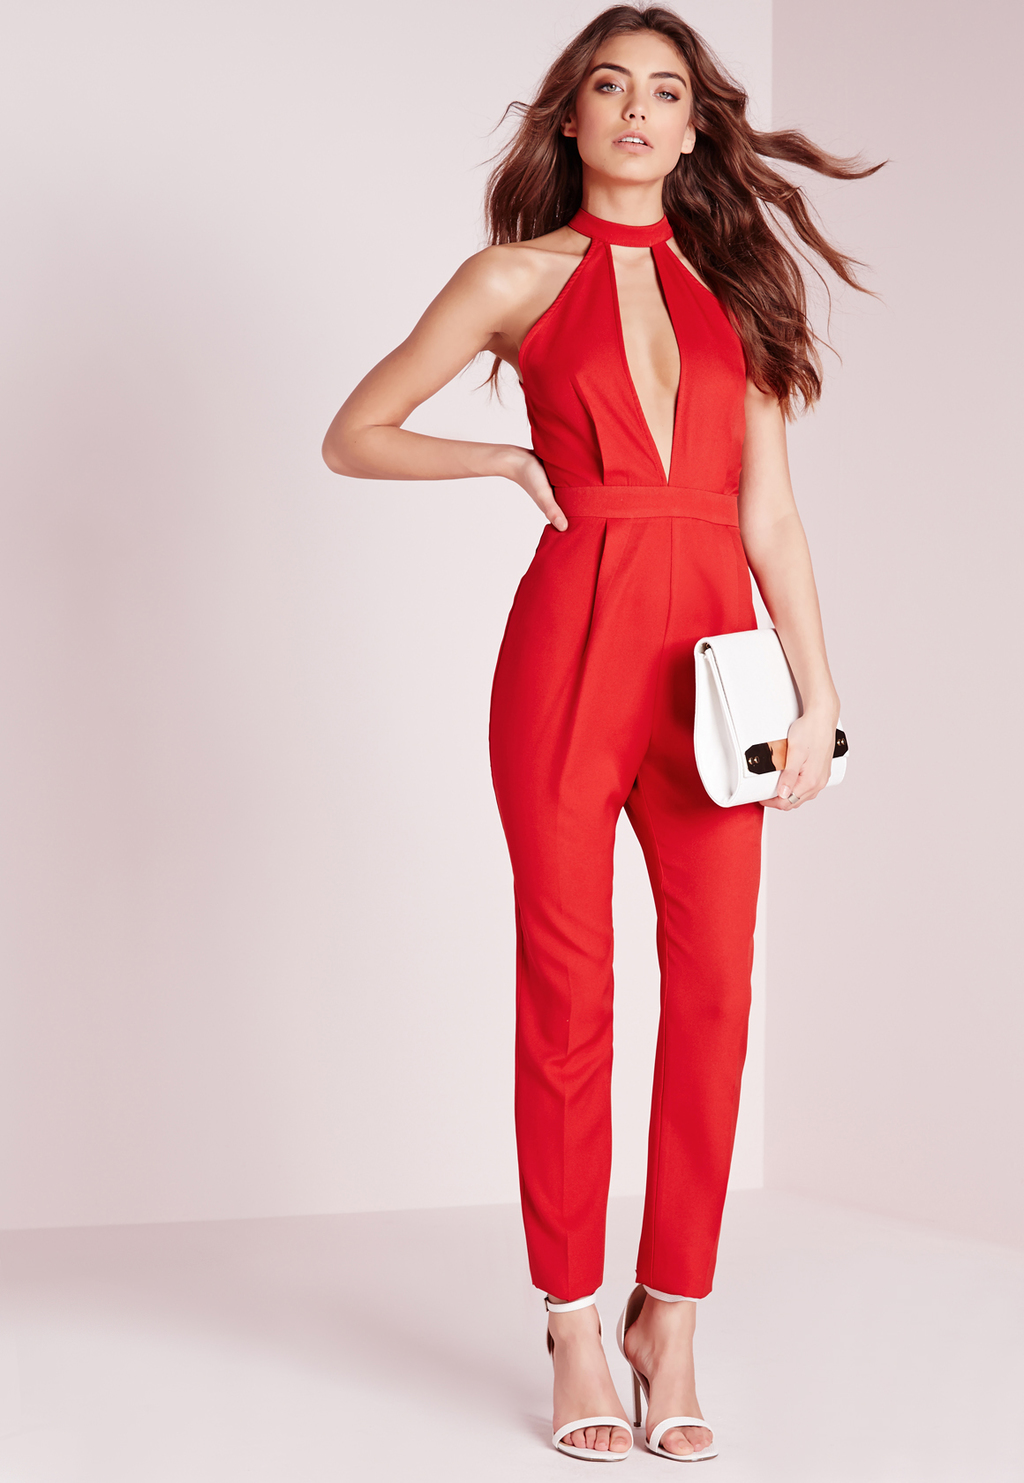 Split Front Jumpsuit Red, Red - fit: tailored/fitted; pattern: plain; sleeve style: sleeveless; predominant colour: true red; occasions: evening; length: ankle length; fibres: polyester/polyamide - 100%; hip detail: subtle/flattering hip detail; waist detail: feature waist detail; sleeve length: sleeveless; texture group: crepes; style: jumpsuit; pattern type: fabric; season: s/s 2016; neckline: high halter neck; wardrobe: event